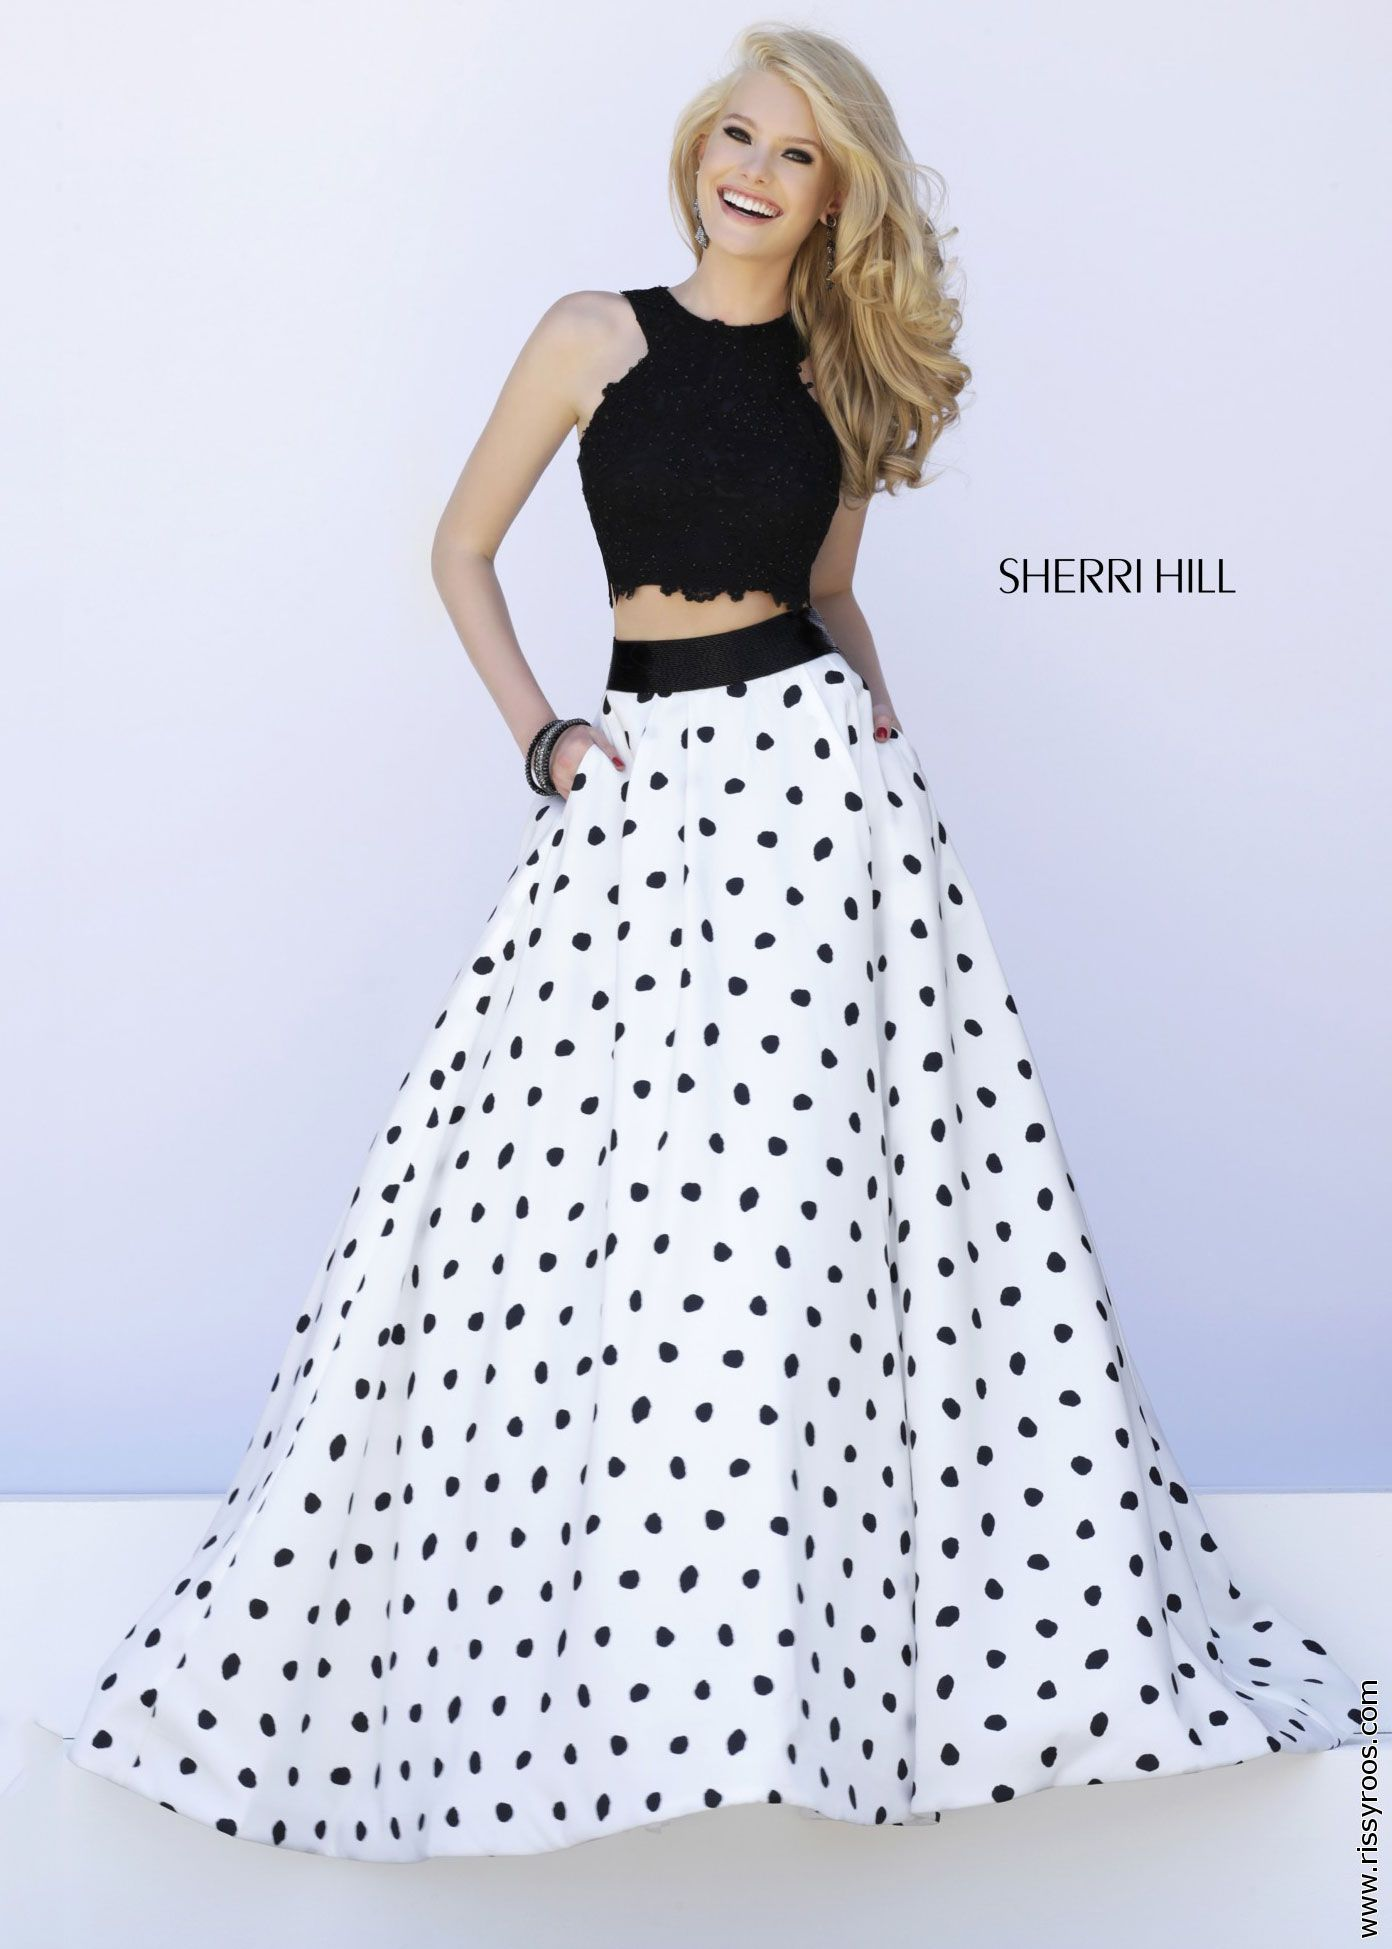 Sherri Hill 32215 - 2PC Black Lace Crop Top with White and Black ...